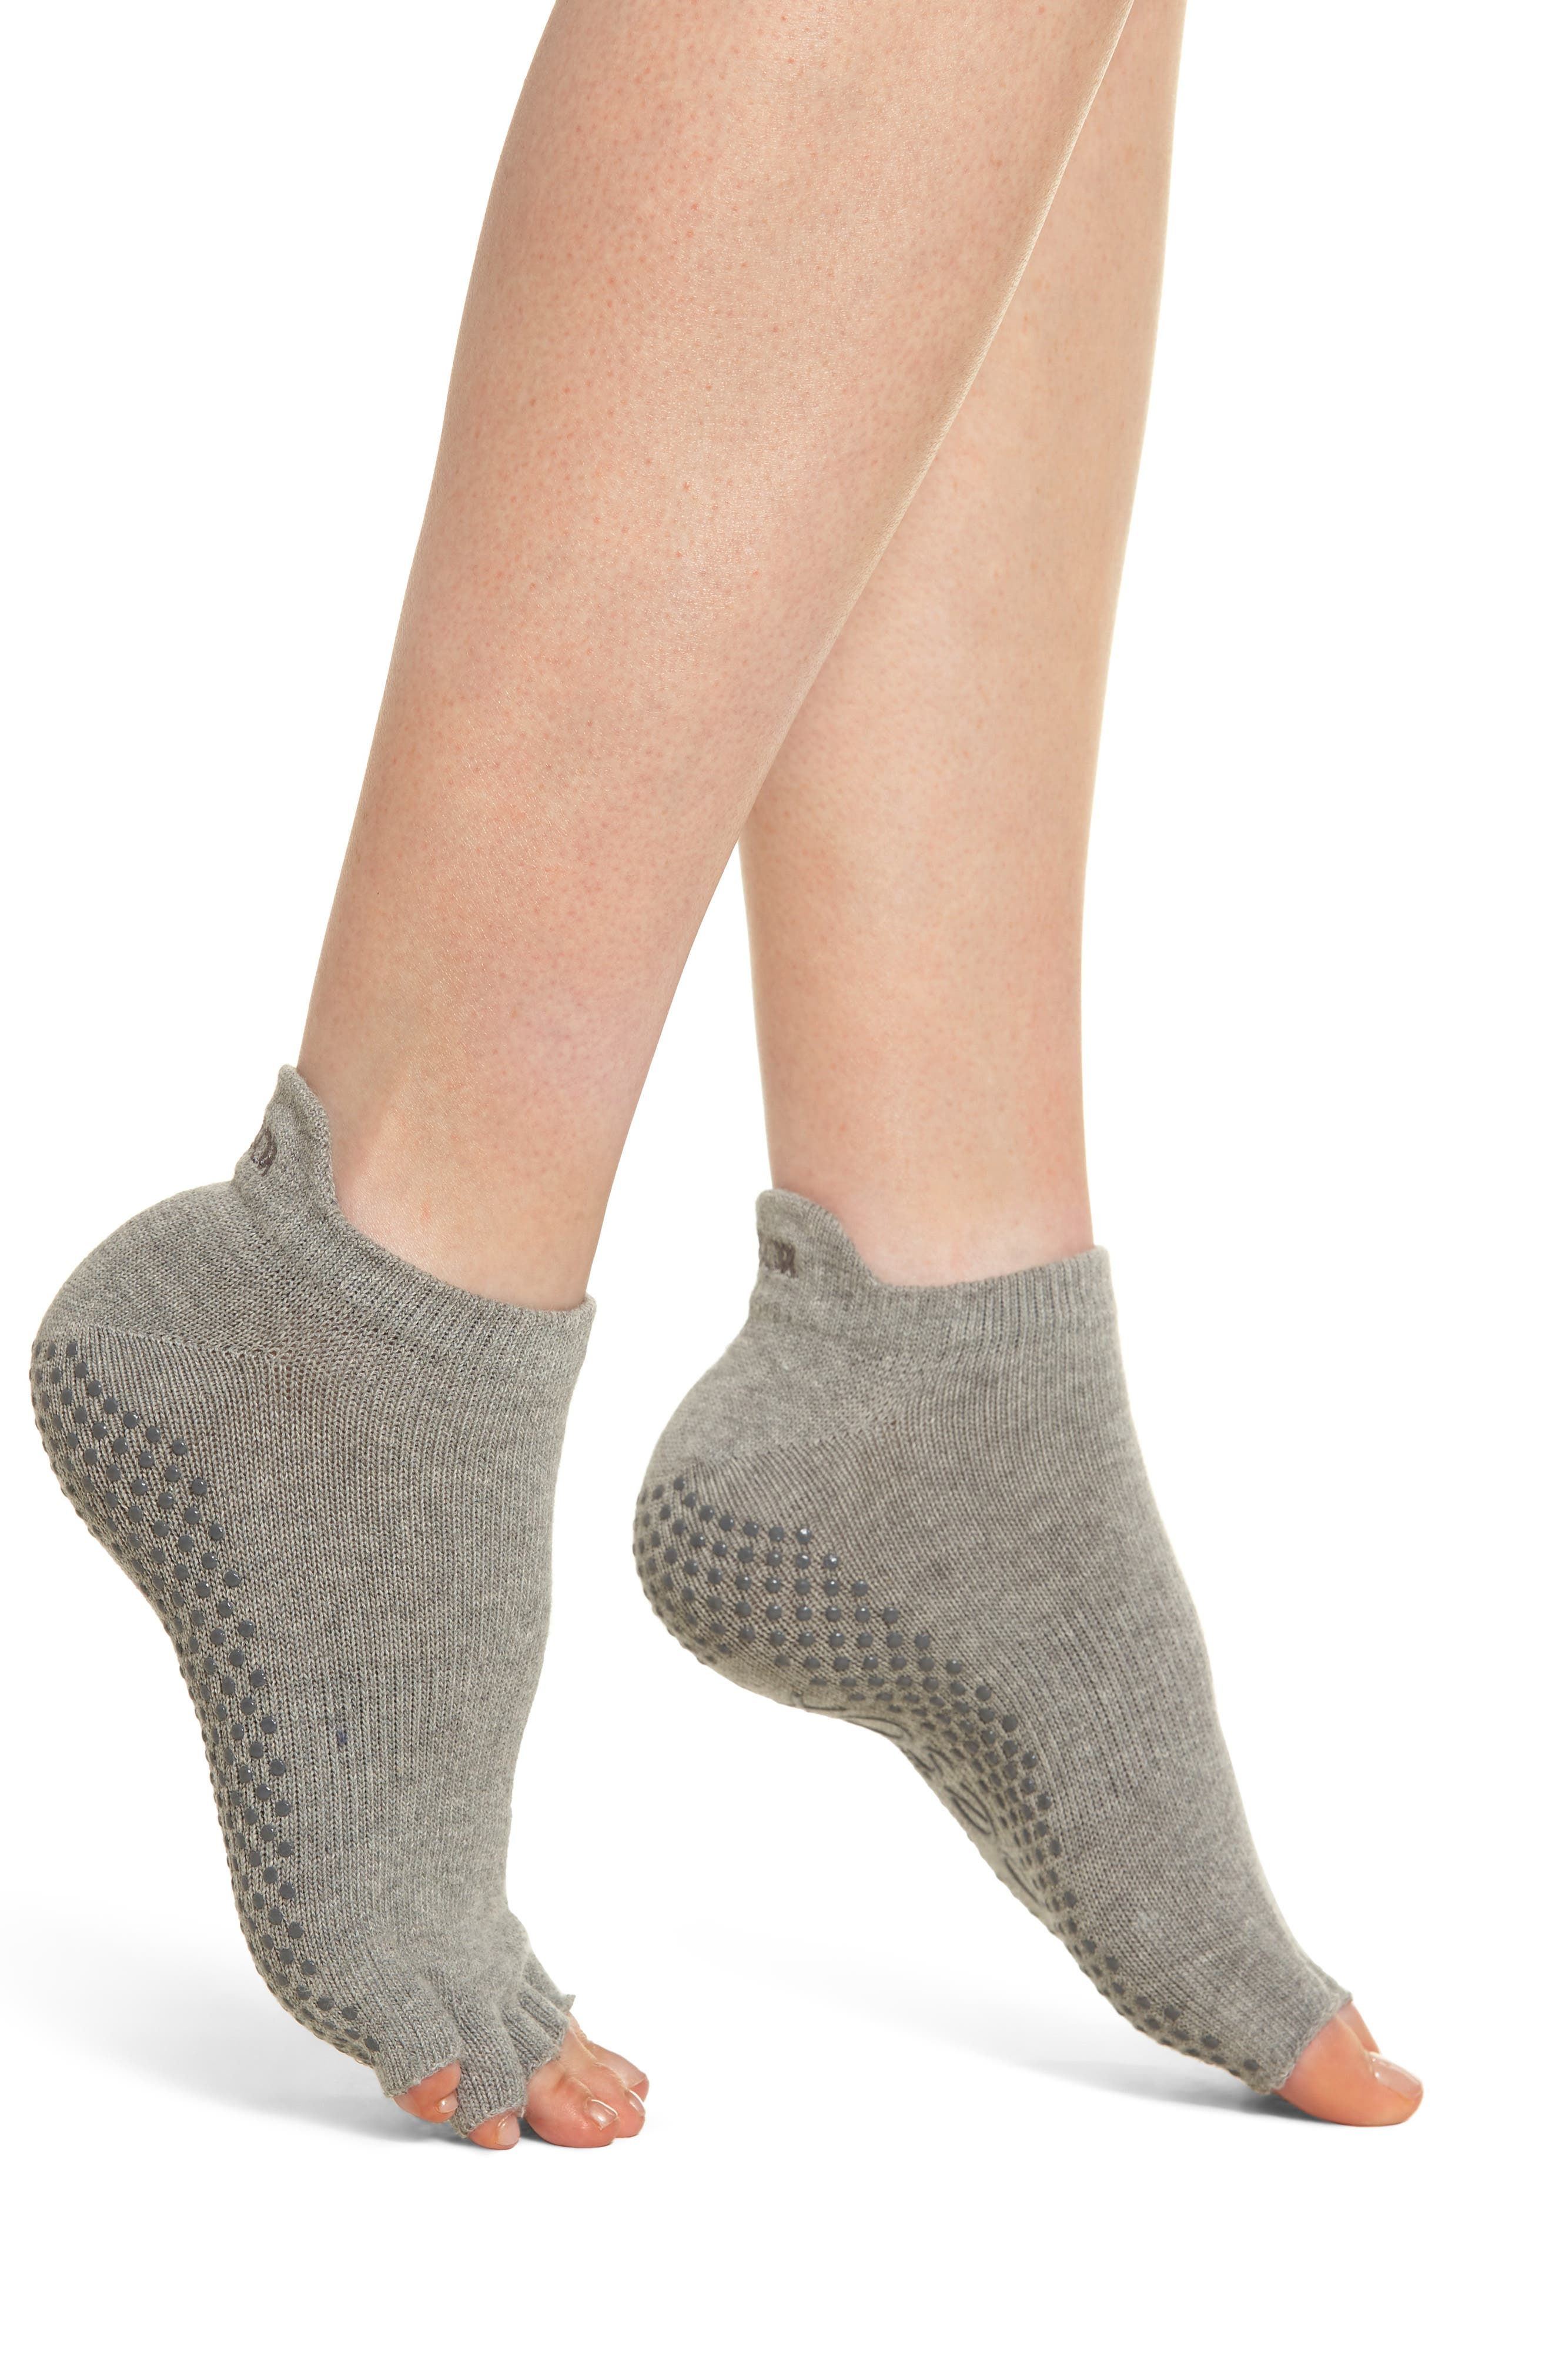 Low Rise Half-Toe Gripper Socks,                             Main thumbnail 1, color,                             HEATHER GREY